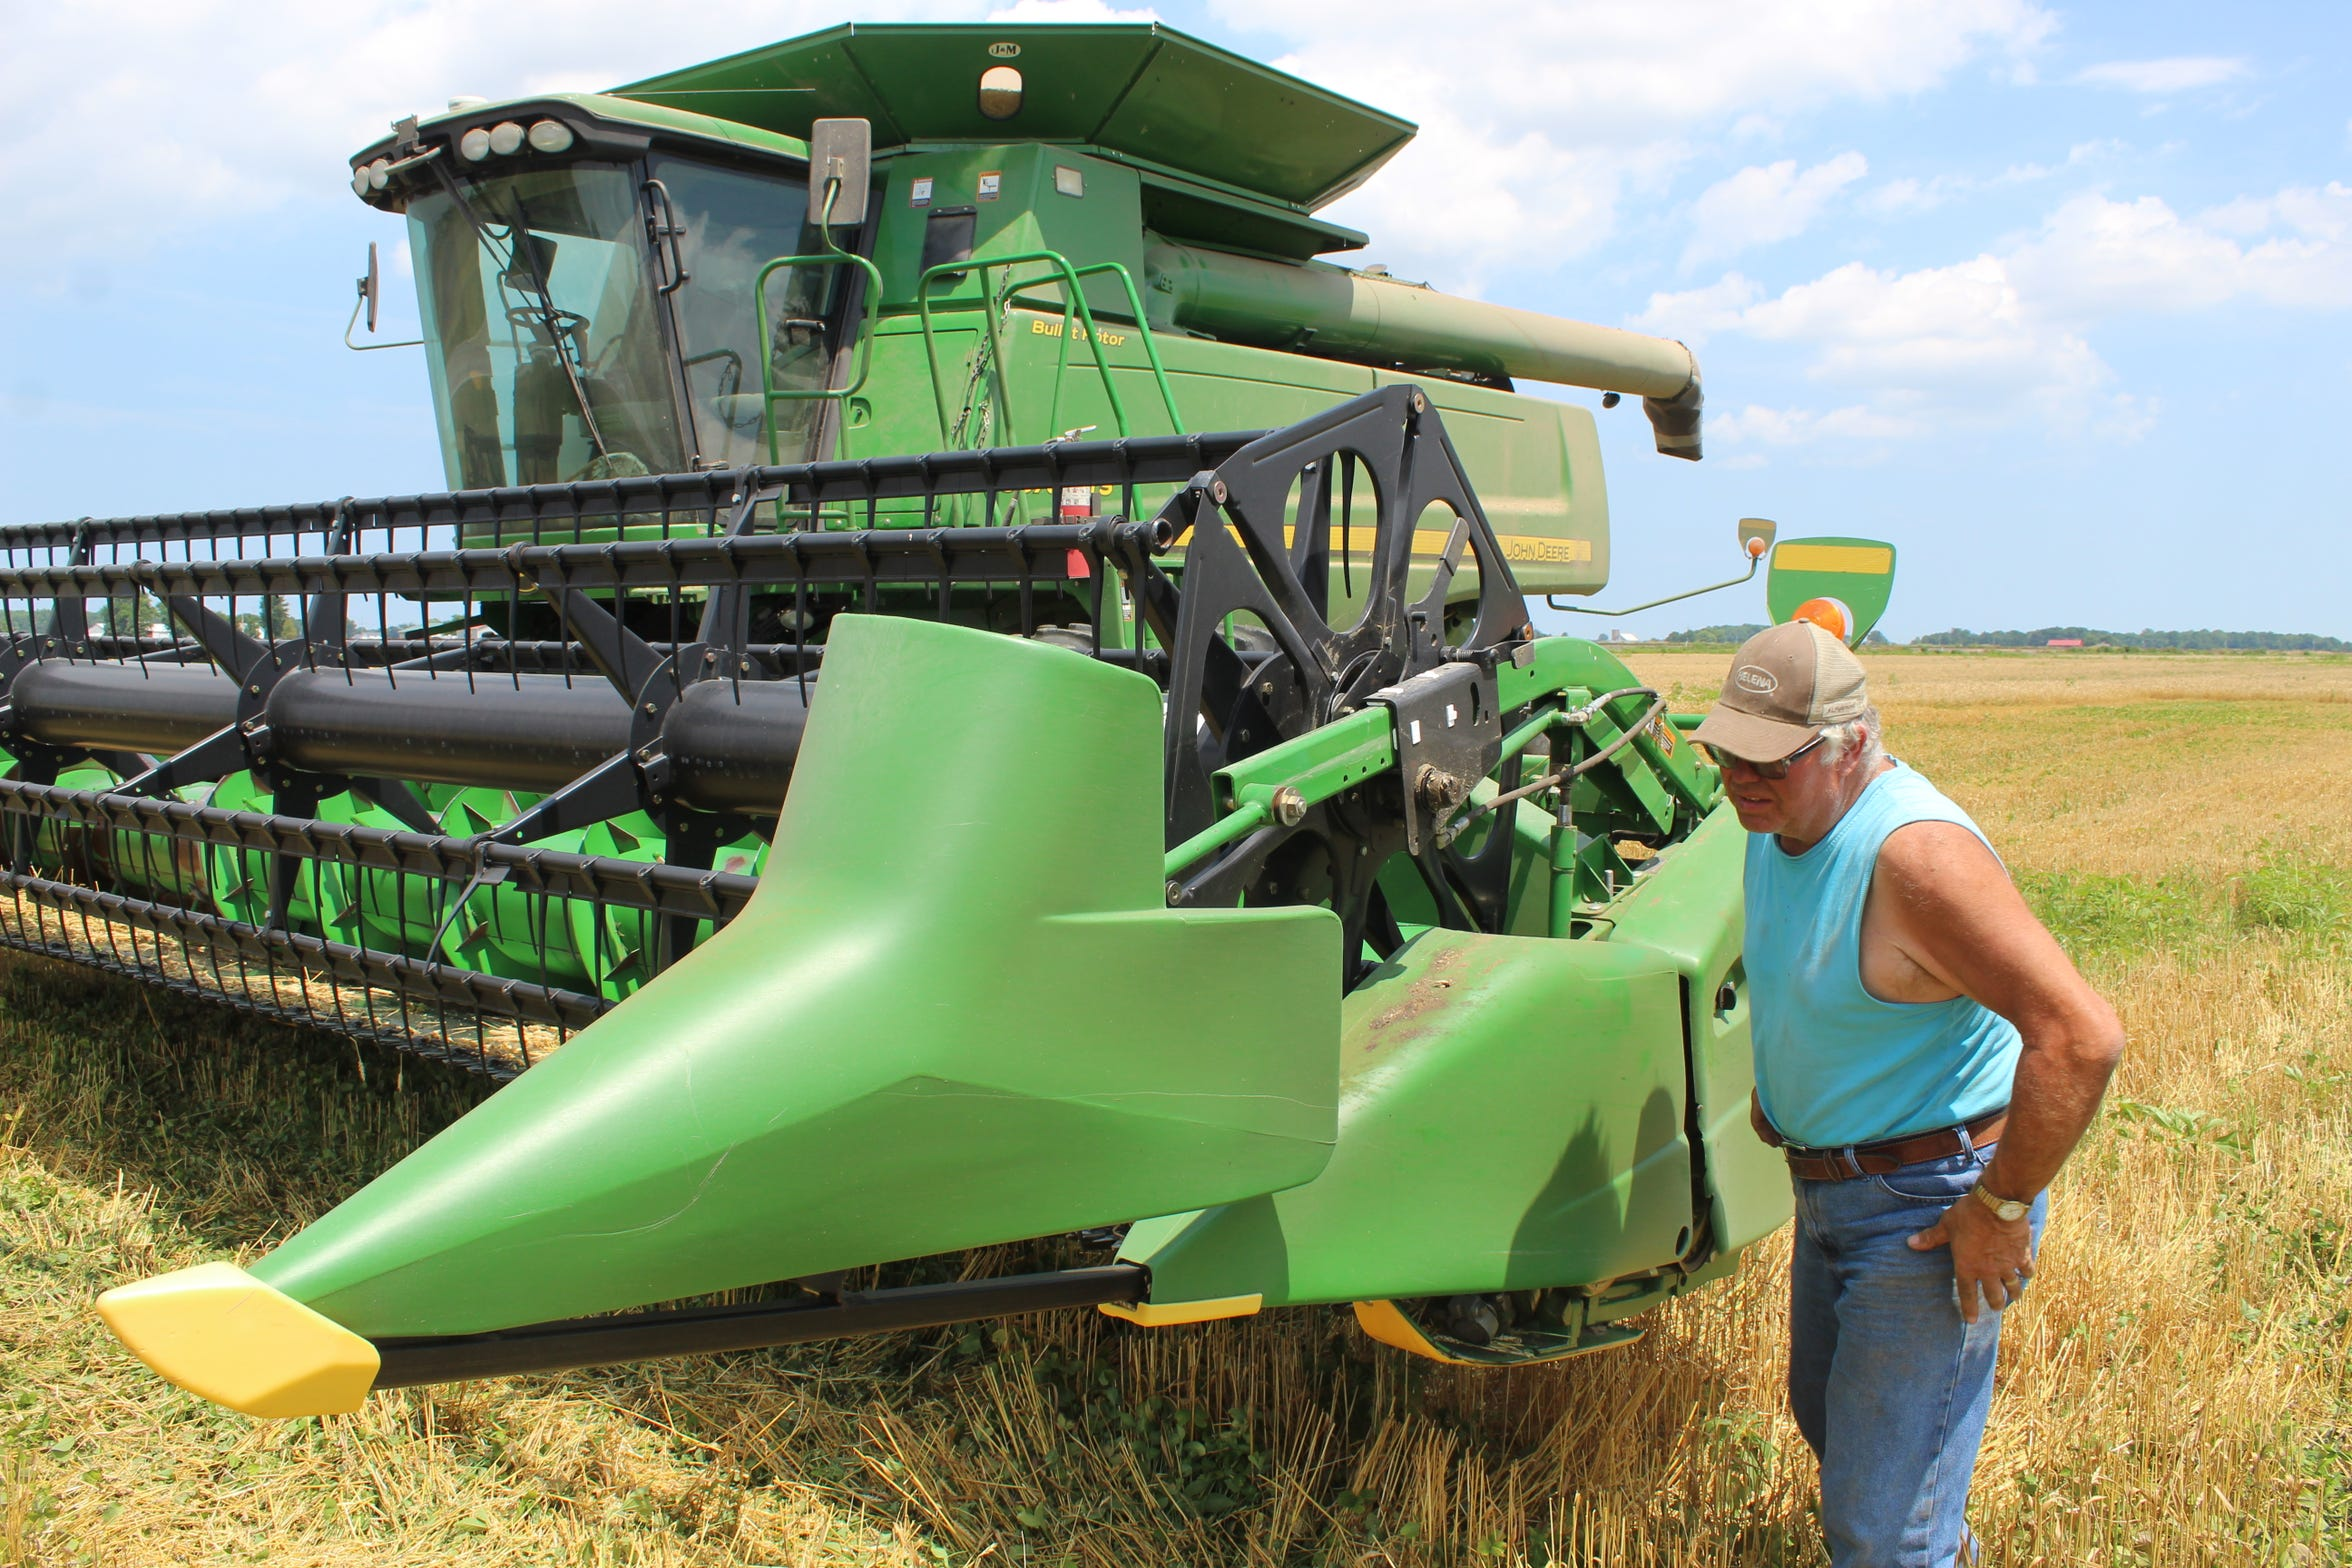 Farmer Ron Laubacher looks over his combine in a wheat field near Benton Carroll Road in Ottawa County.